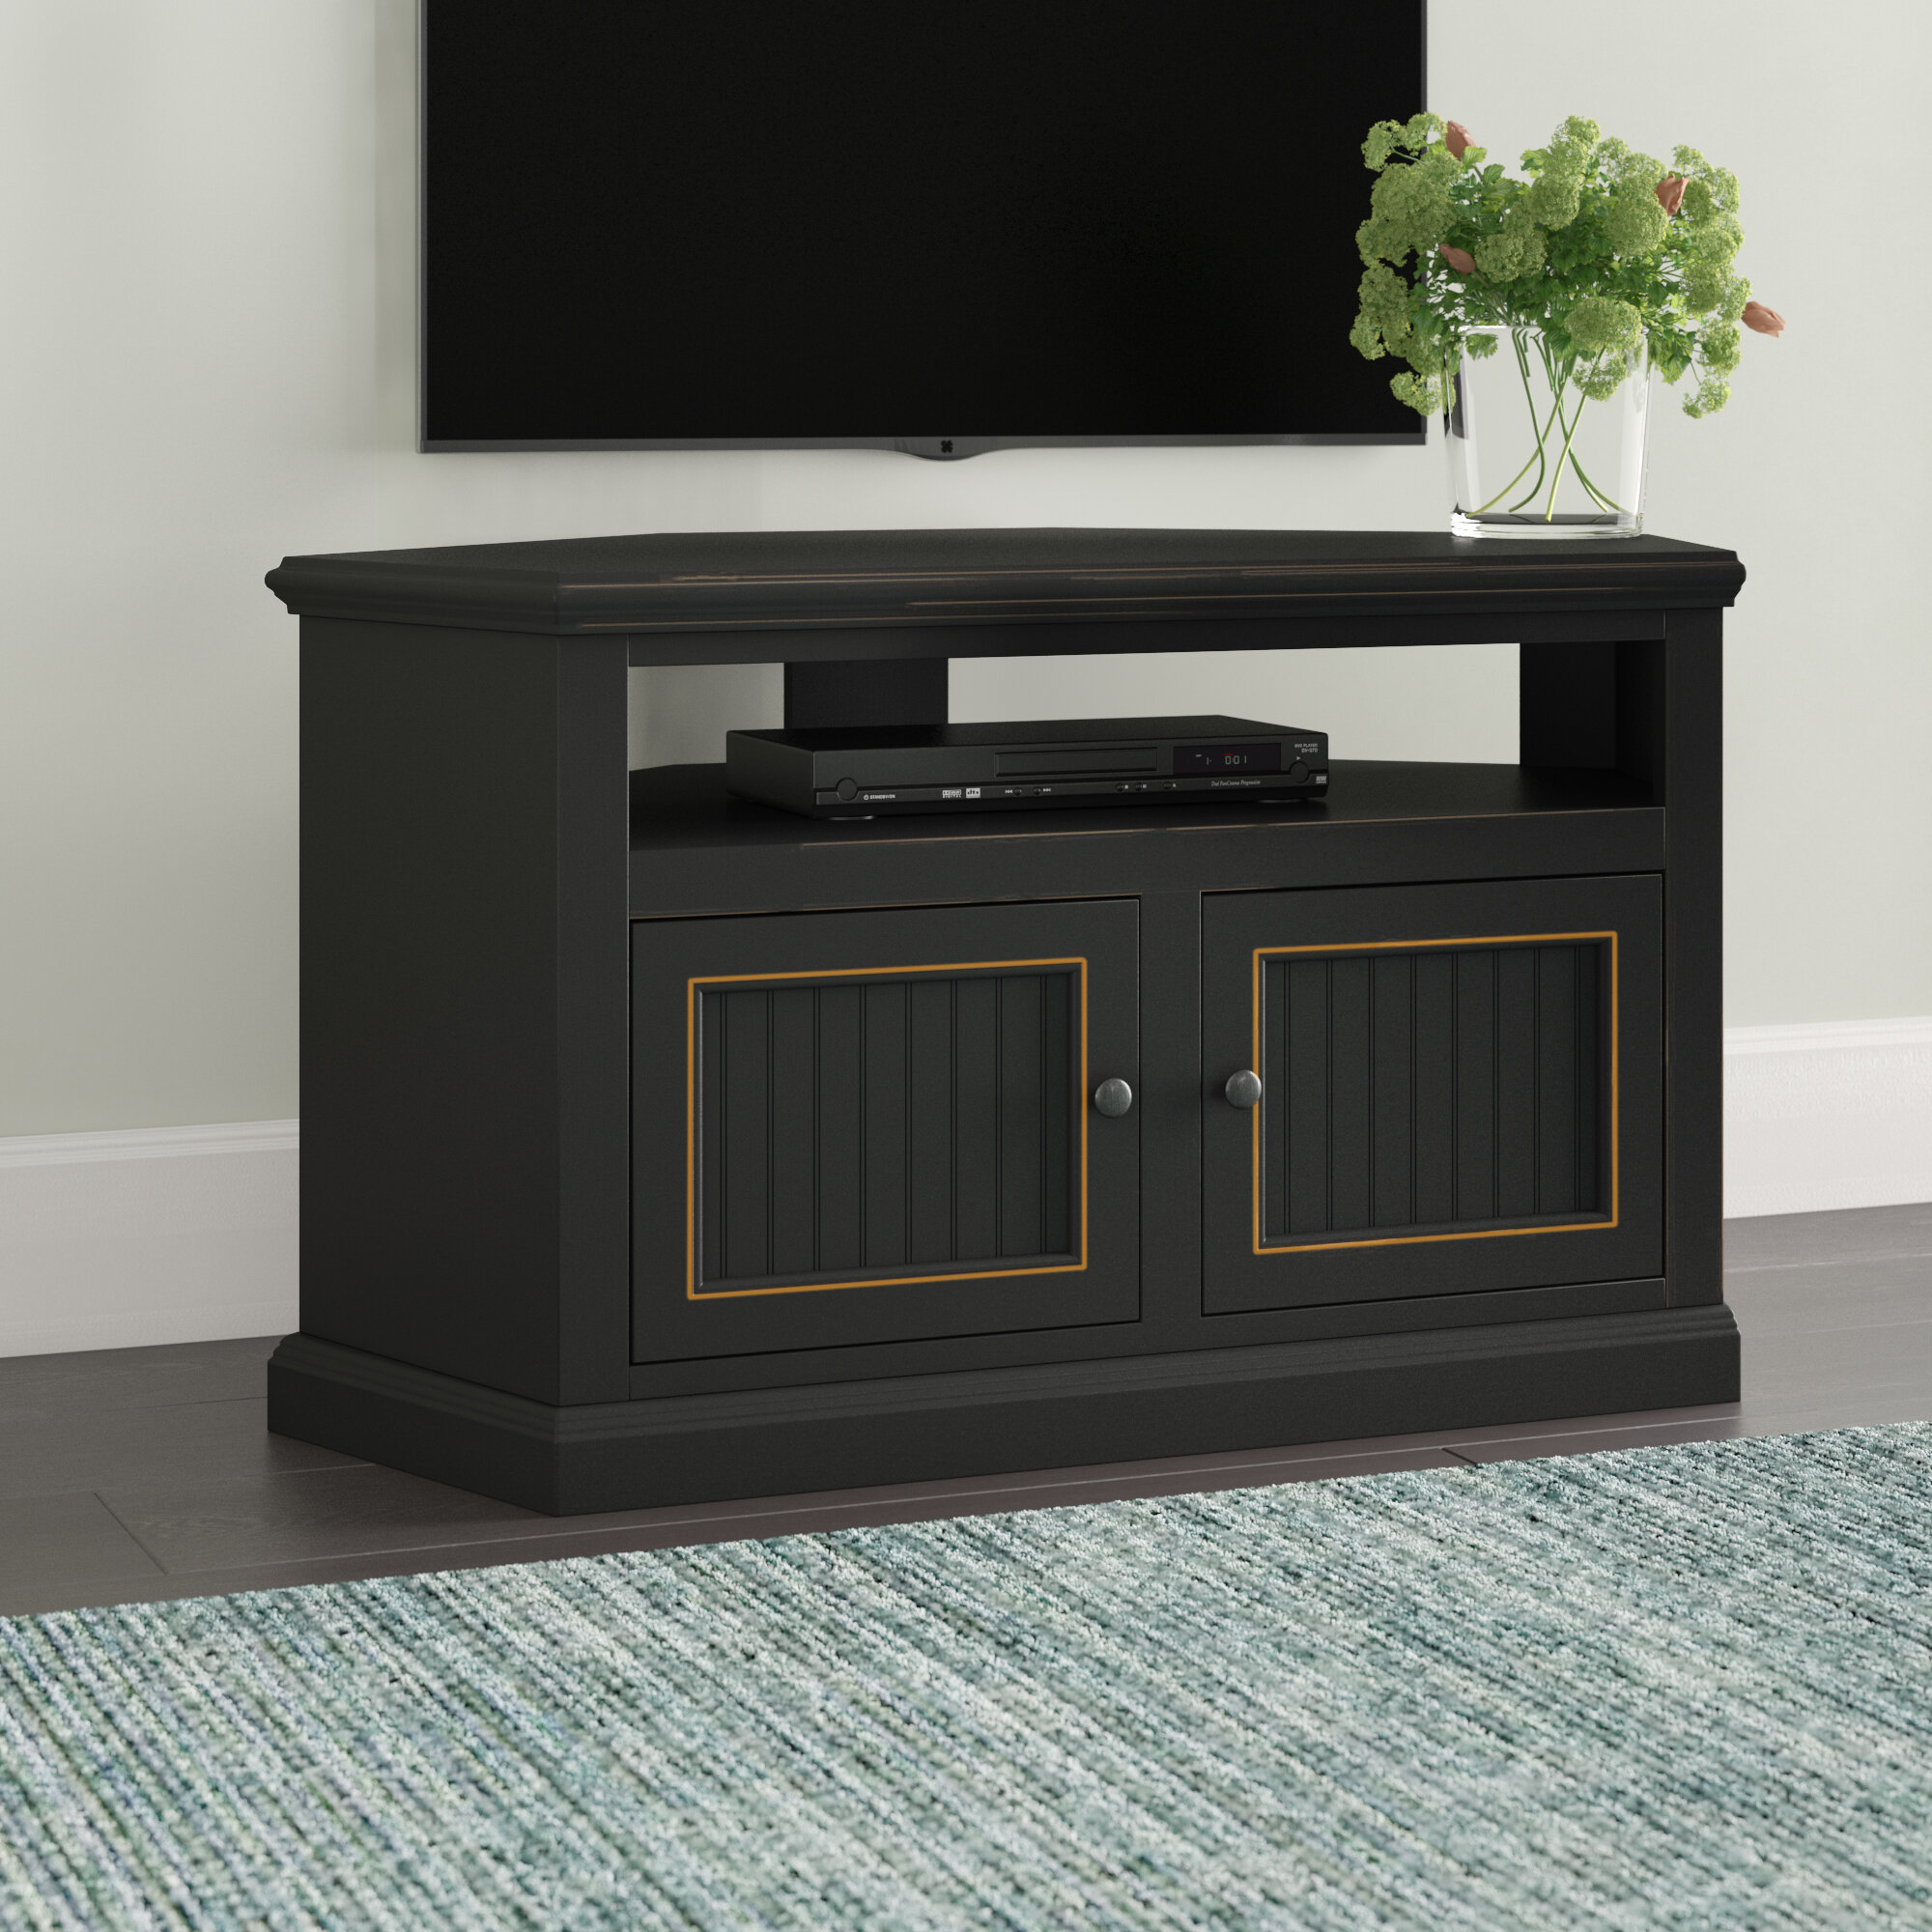 Beachcrest Home Coconut Creek Corner TV Stand for TVs up to 55